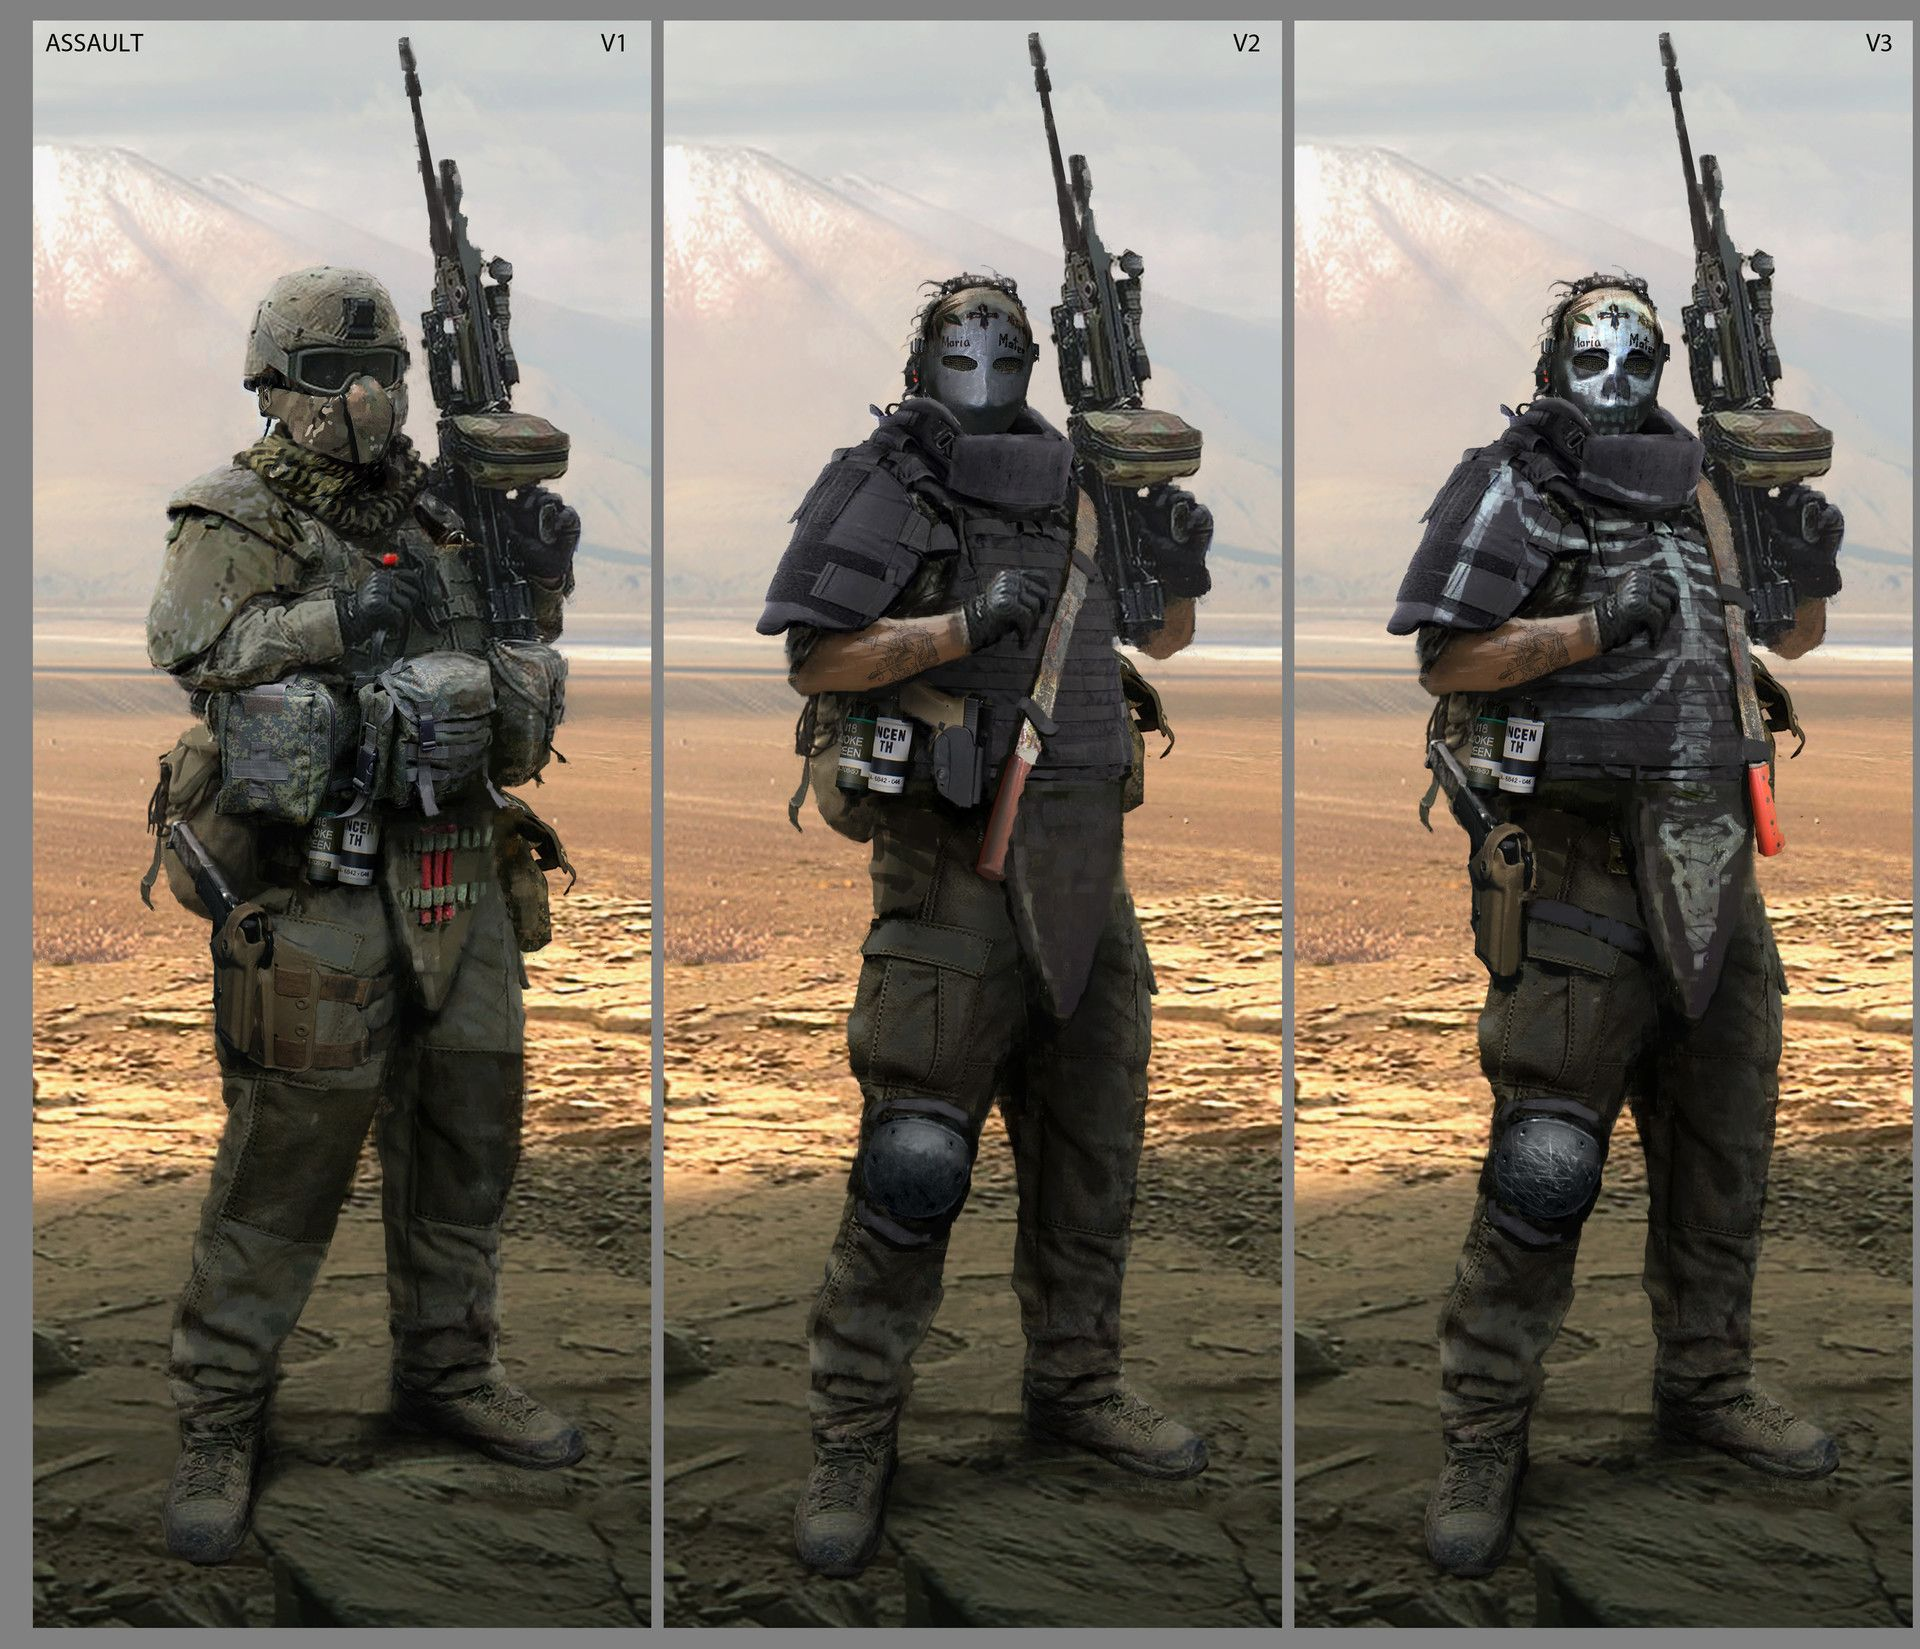 Apocalyptic Soldier Pics: ArtStation Is The Leading Showcase Platform For Games